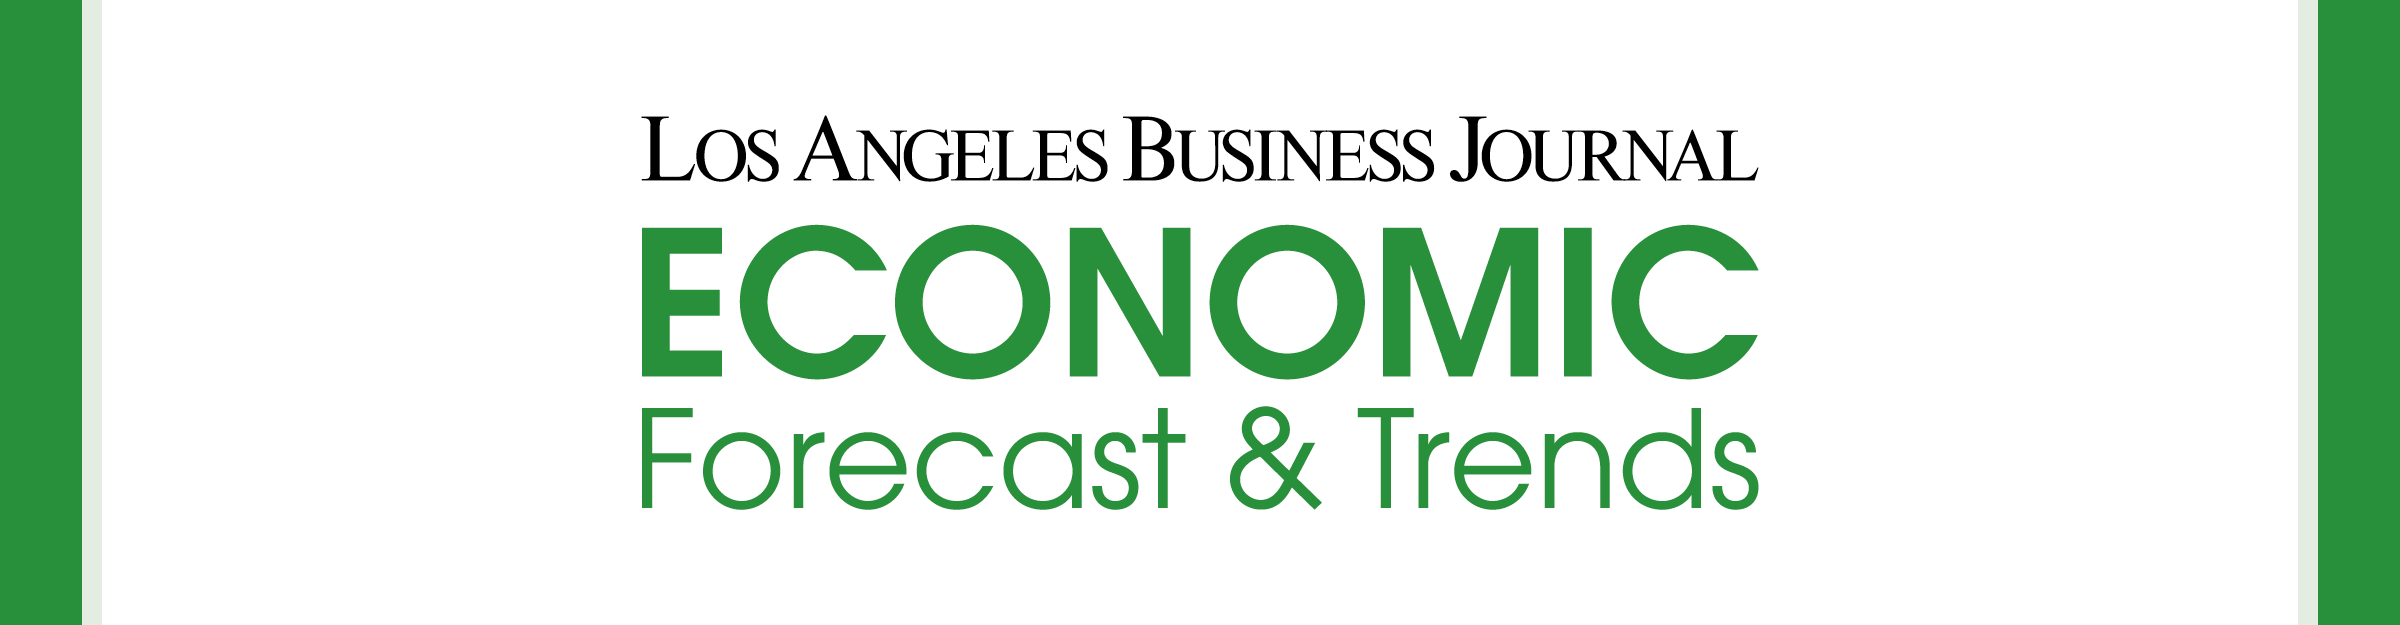 Los Angeles Business Journal Economic Forecast and Trends Event Banner